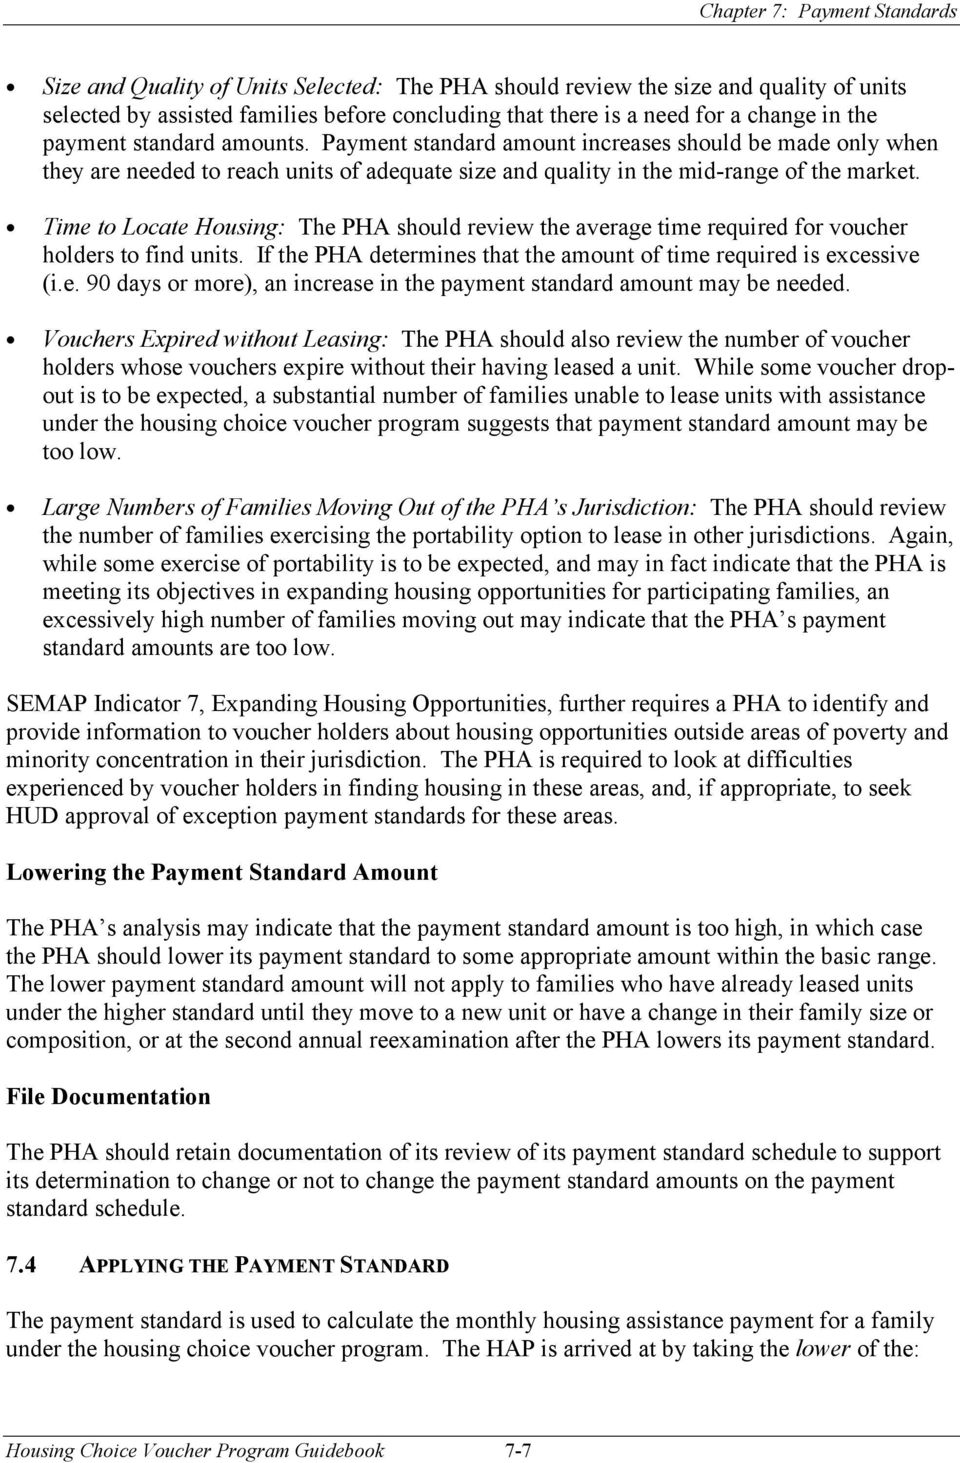 Time to Locate Housing: The PHA should review the average time required for voucher holders to find units. If the PHA determines that the amount of time required is excessive (i.e. 90 days or more), an increase in the payment standard amount may be needed.